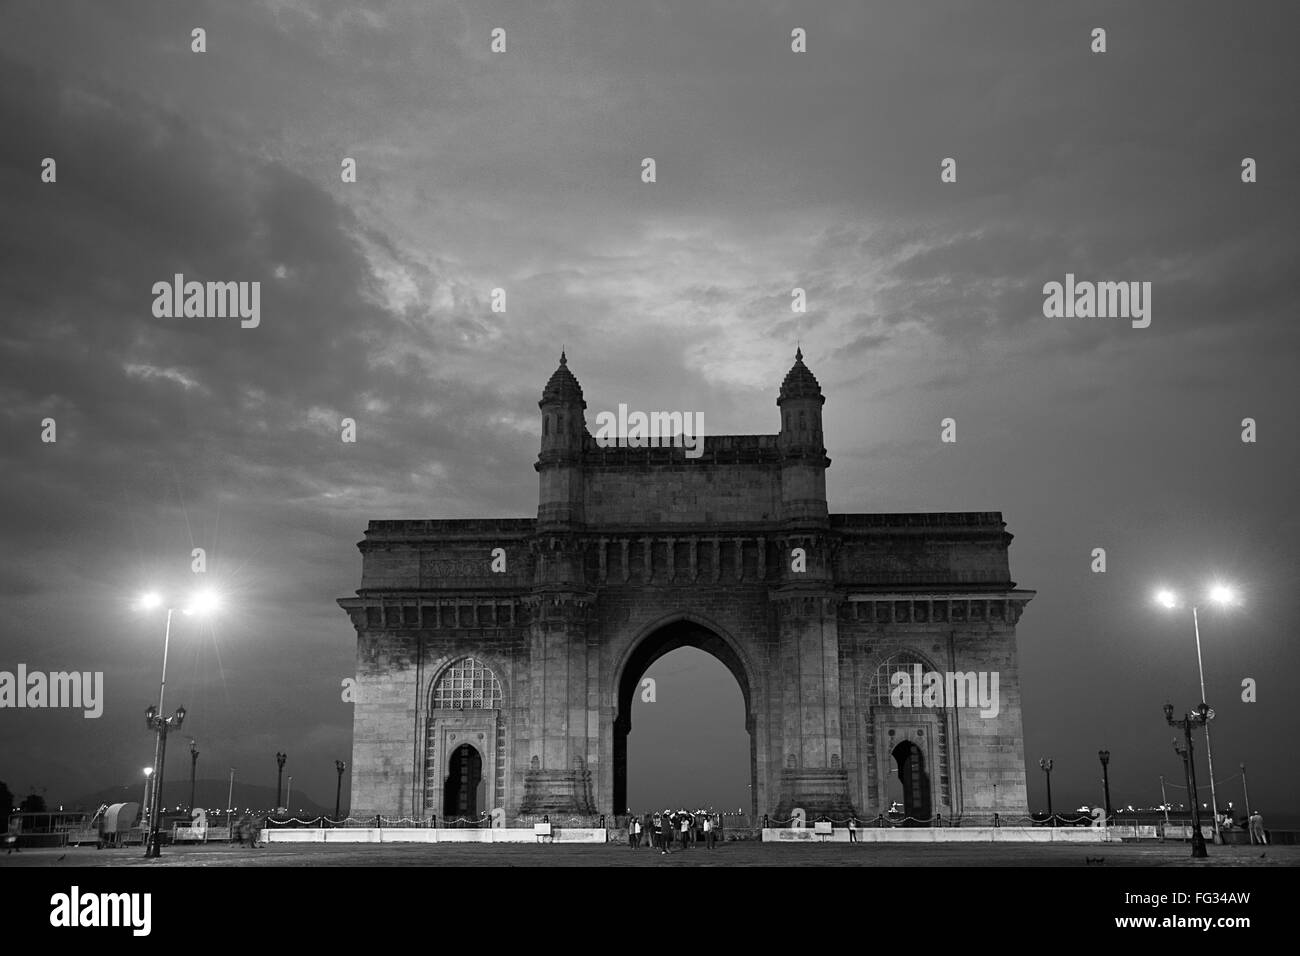 Gateway of India ; Bombay ; Mumbai ; Maharashtra ; India - vhm 225066 - Stock Image